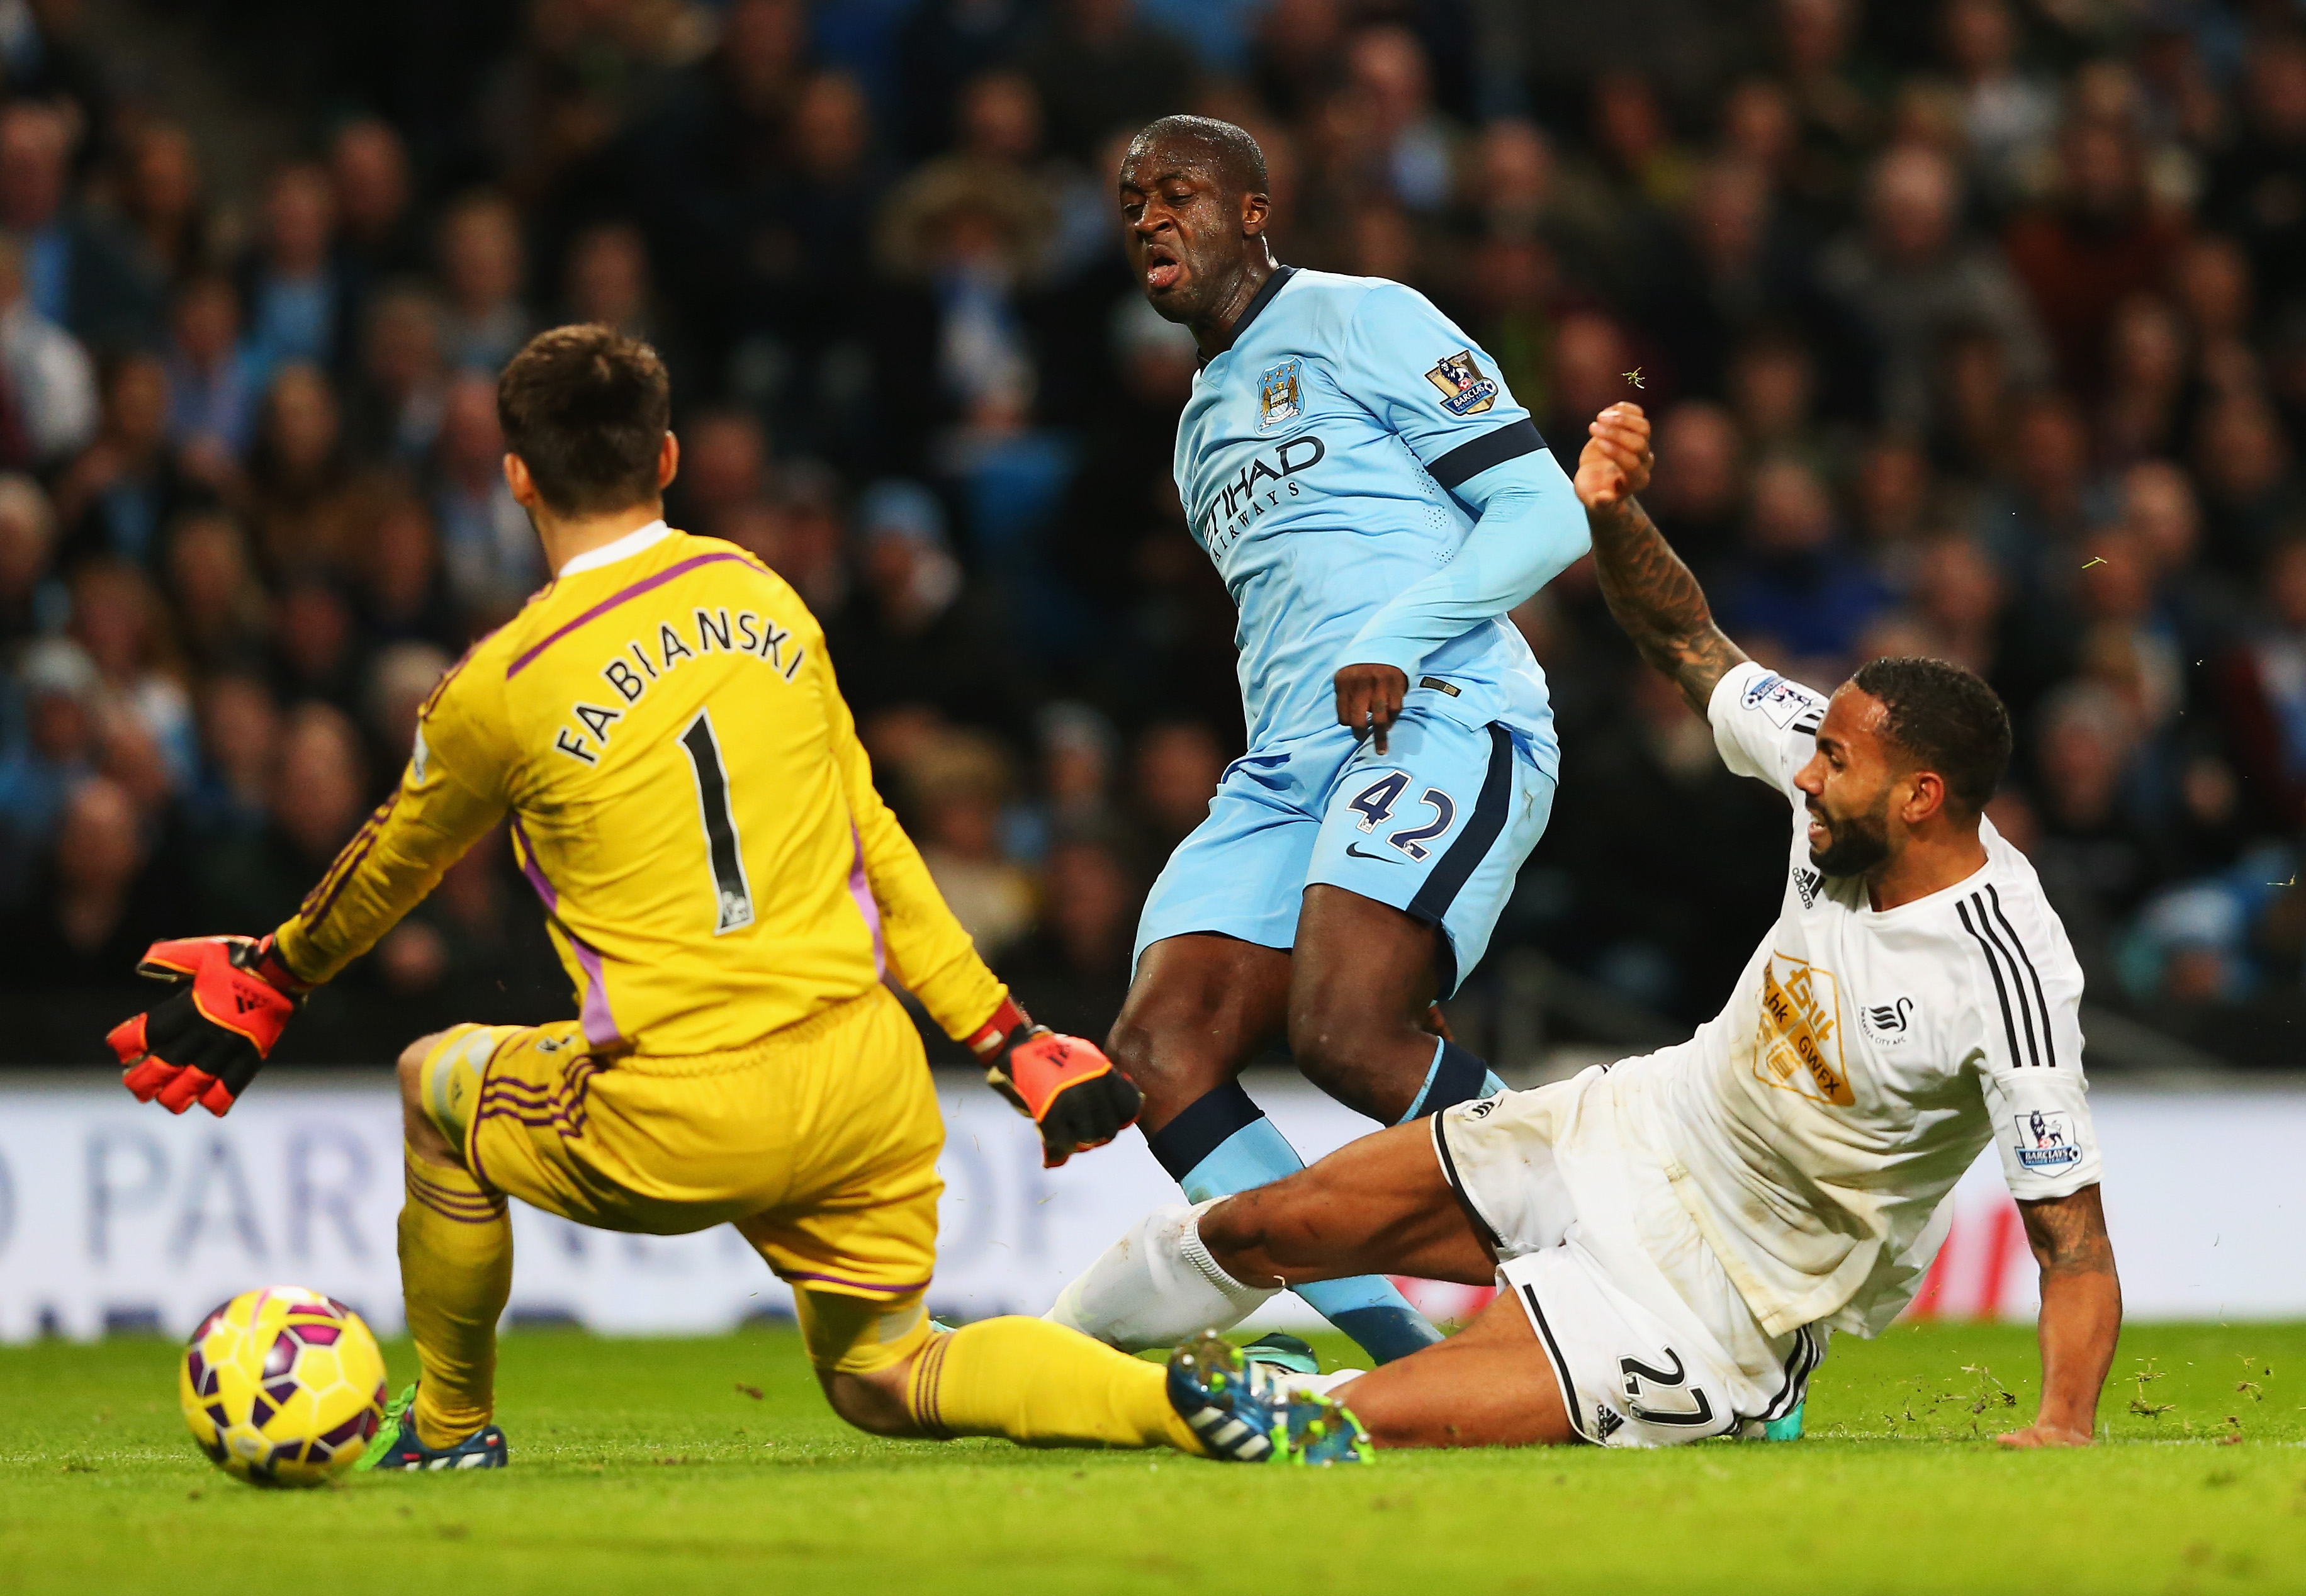 Manchester City – Swansea